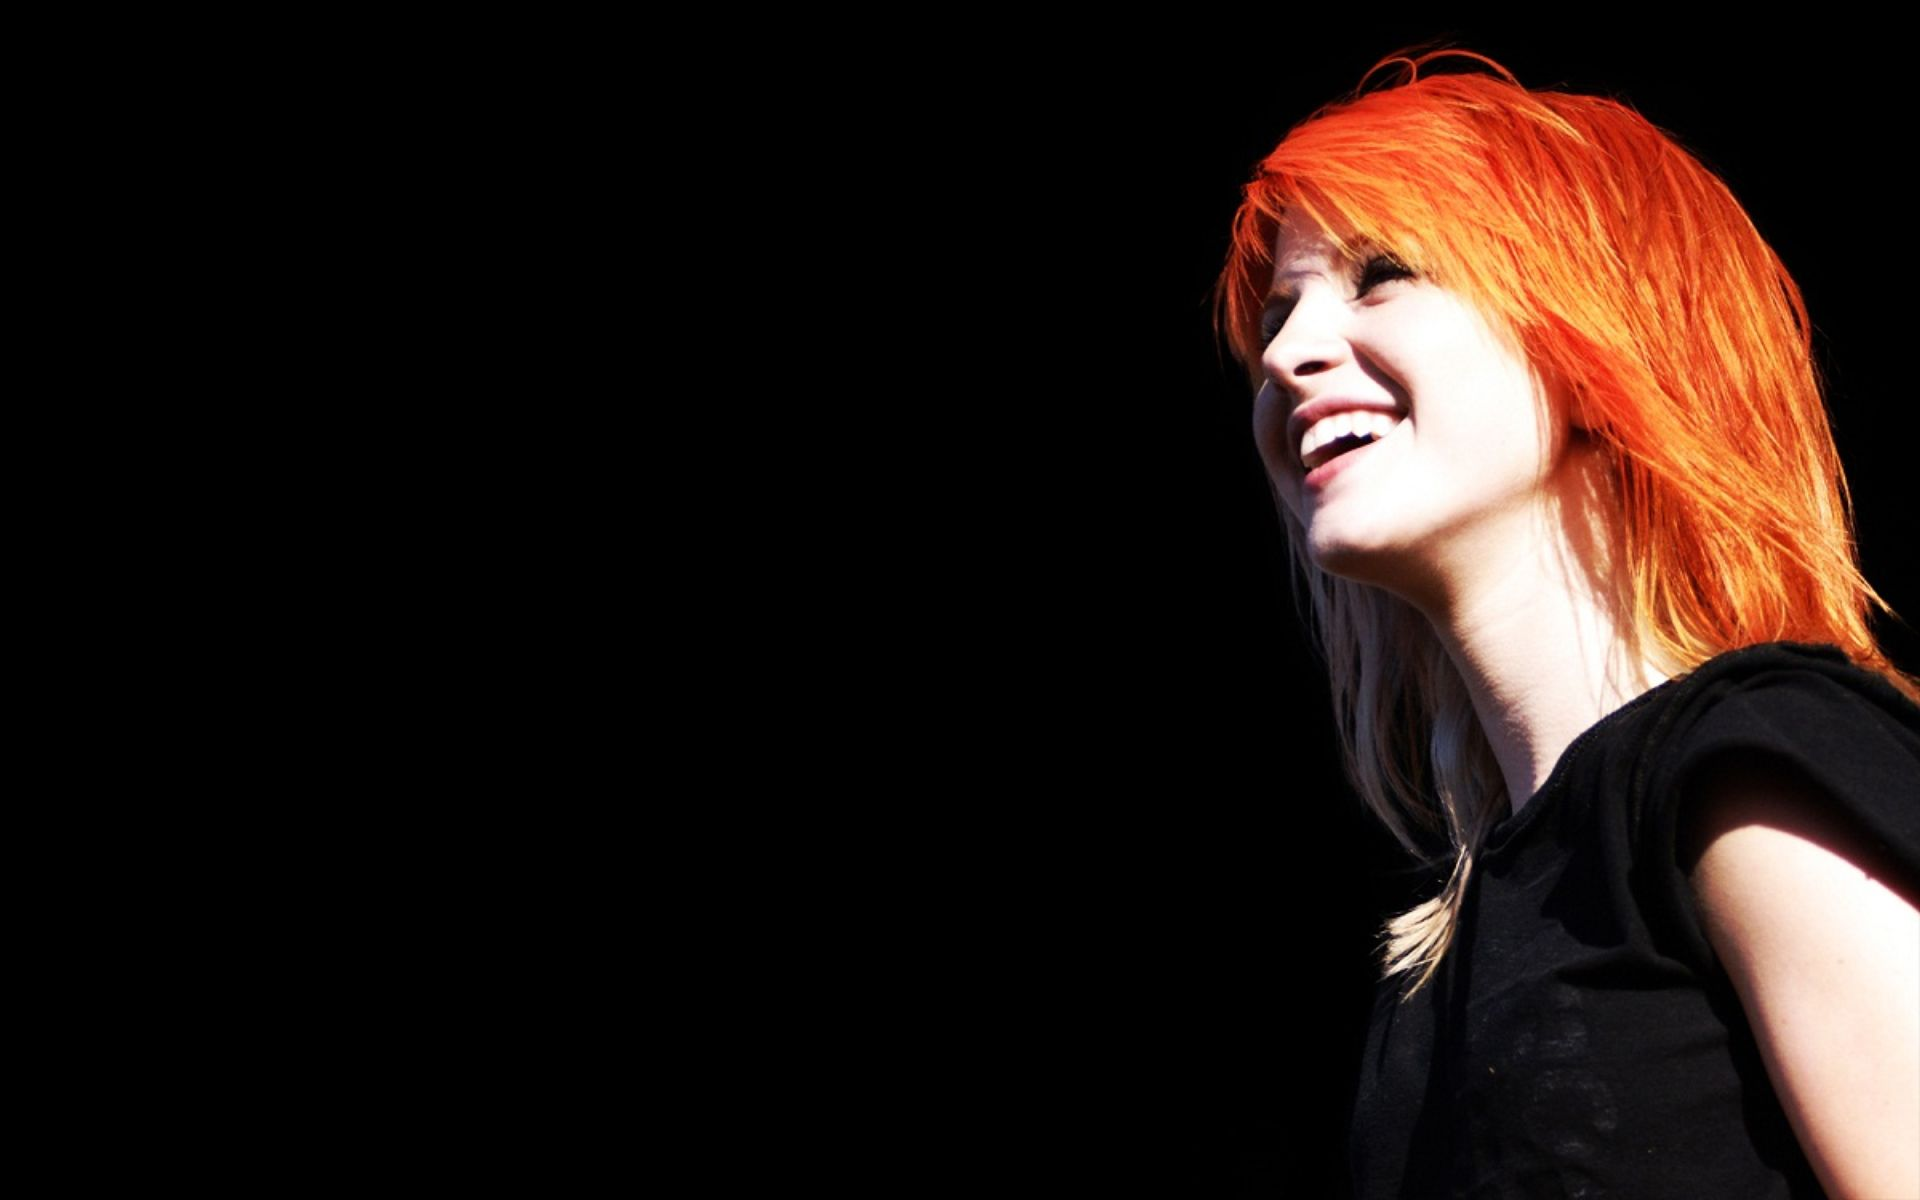 Cute Hayley Williams Wallpaper